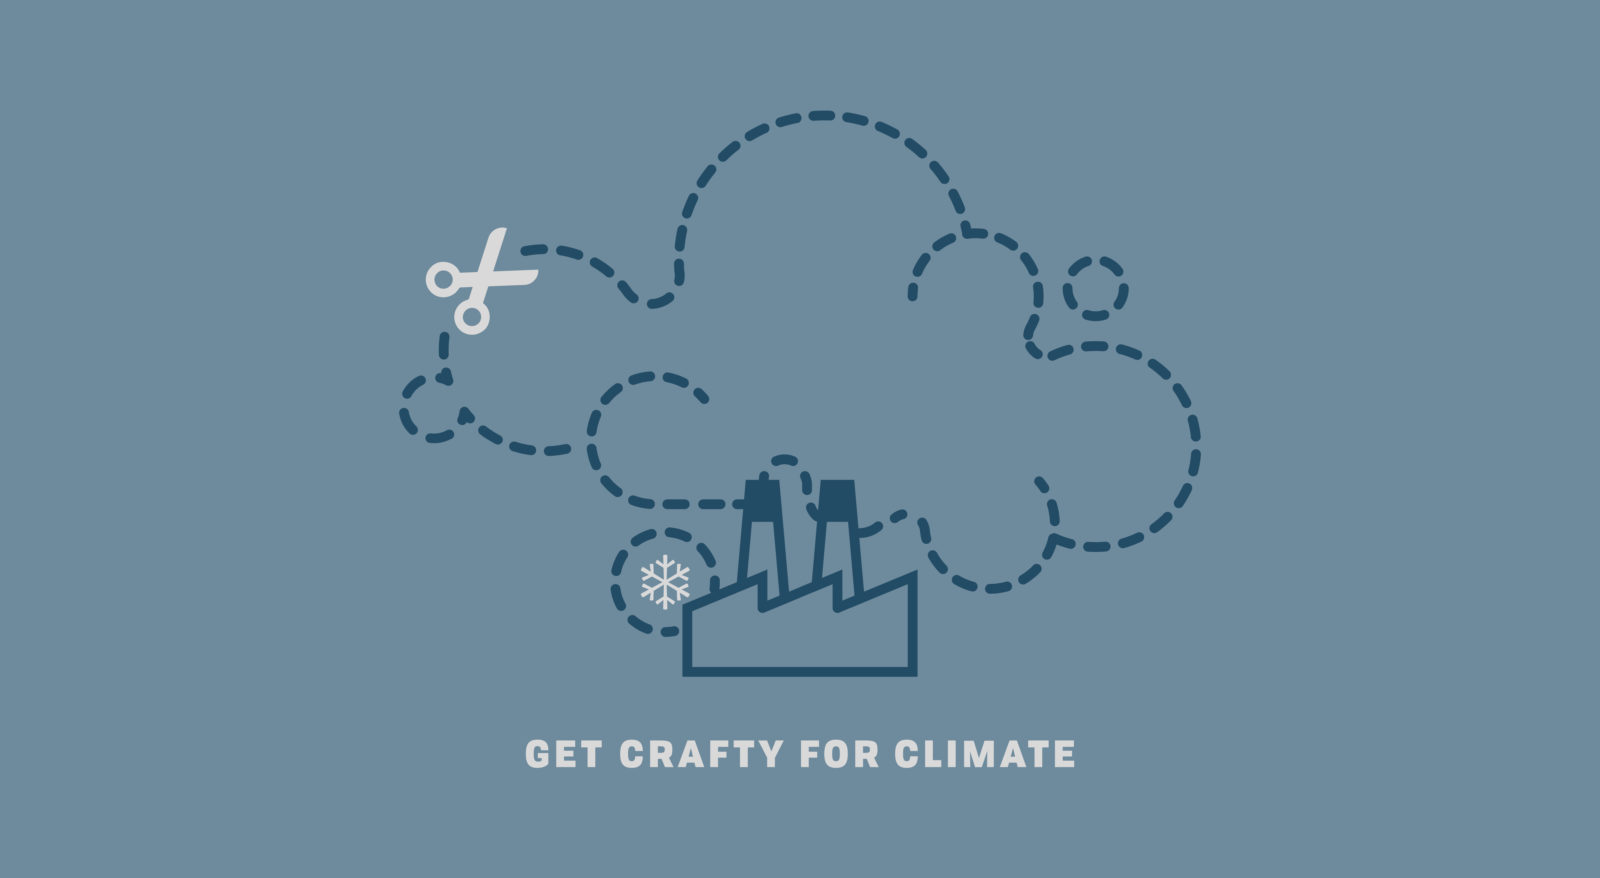 #GetCraftyForClimate